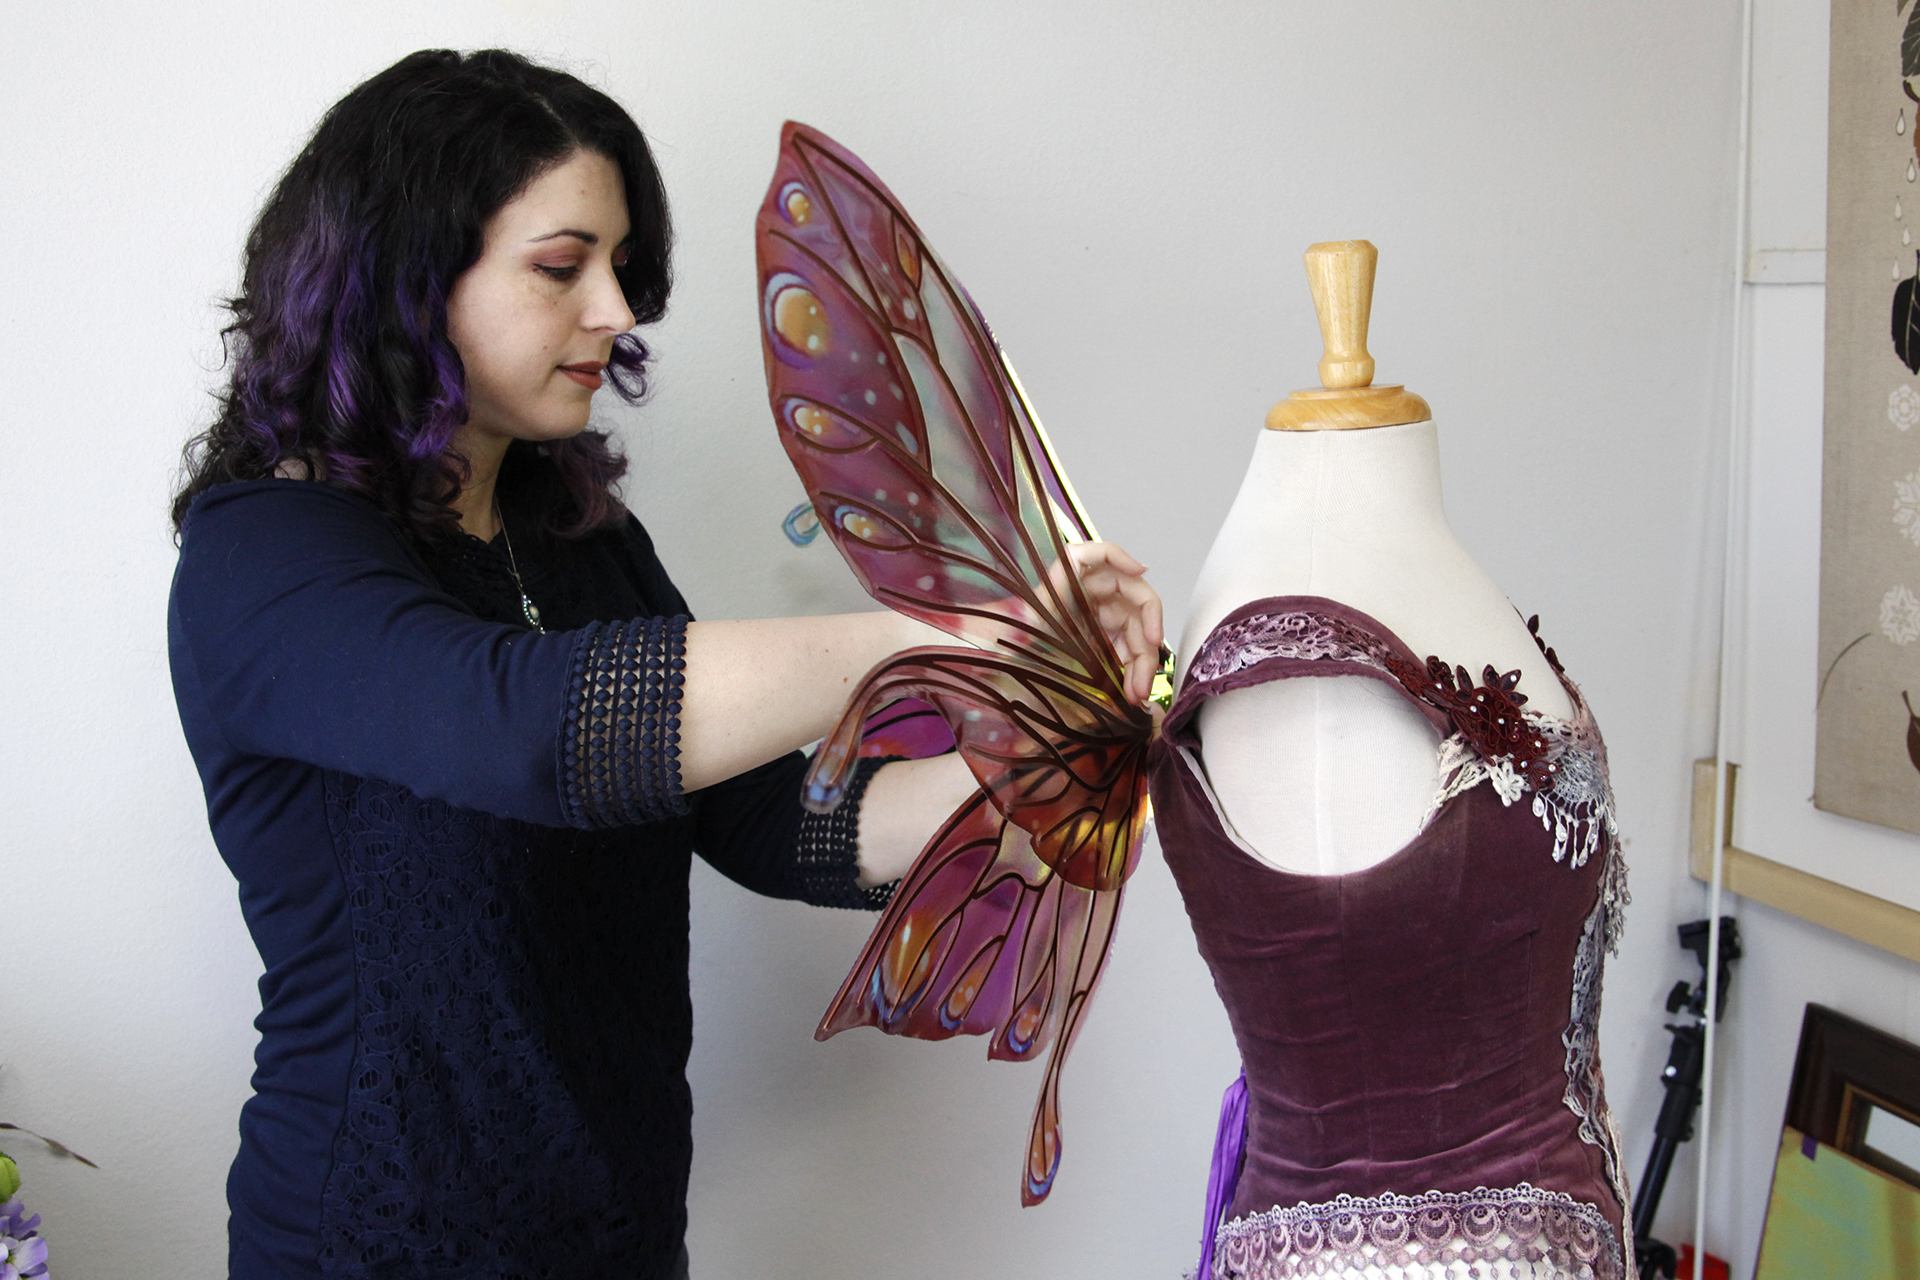 Professional fairy wing maker Angela Jarman adjusts one of her handmade wings at her studio in Richmond.